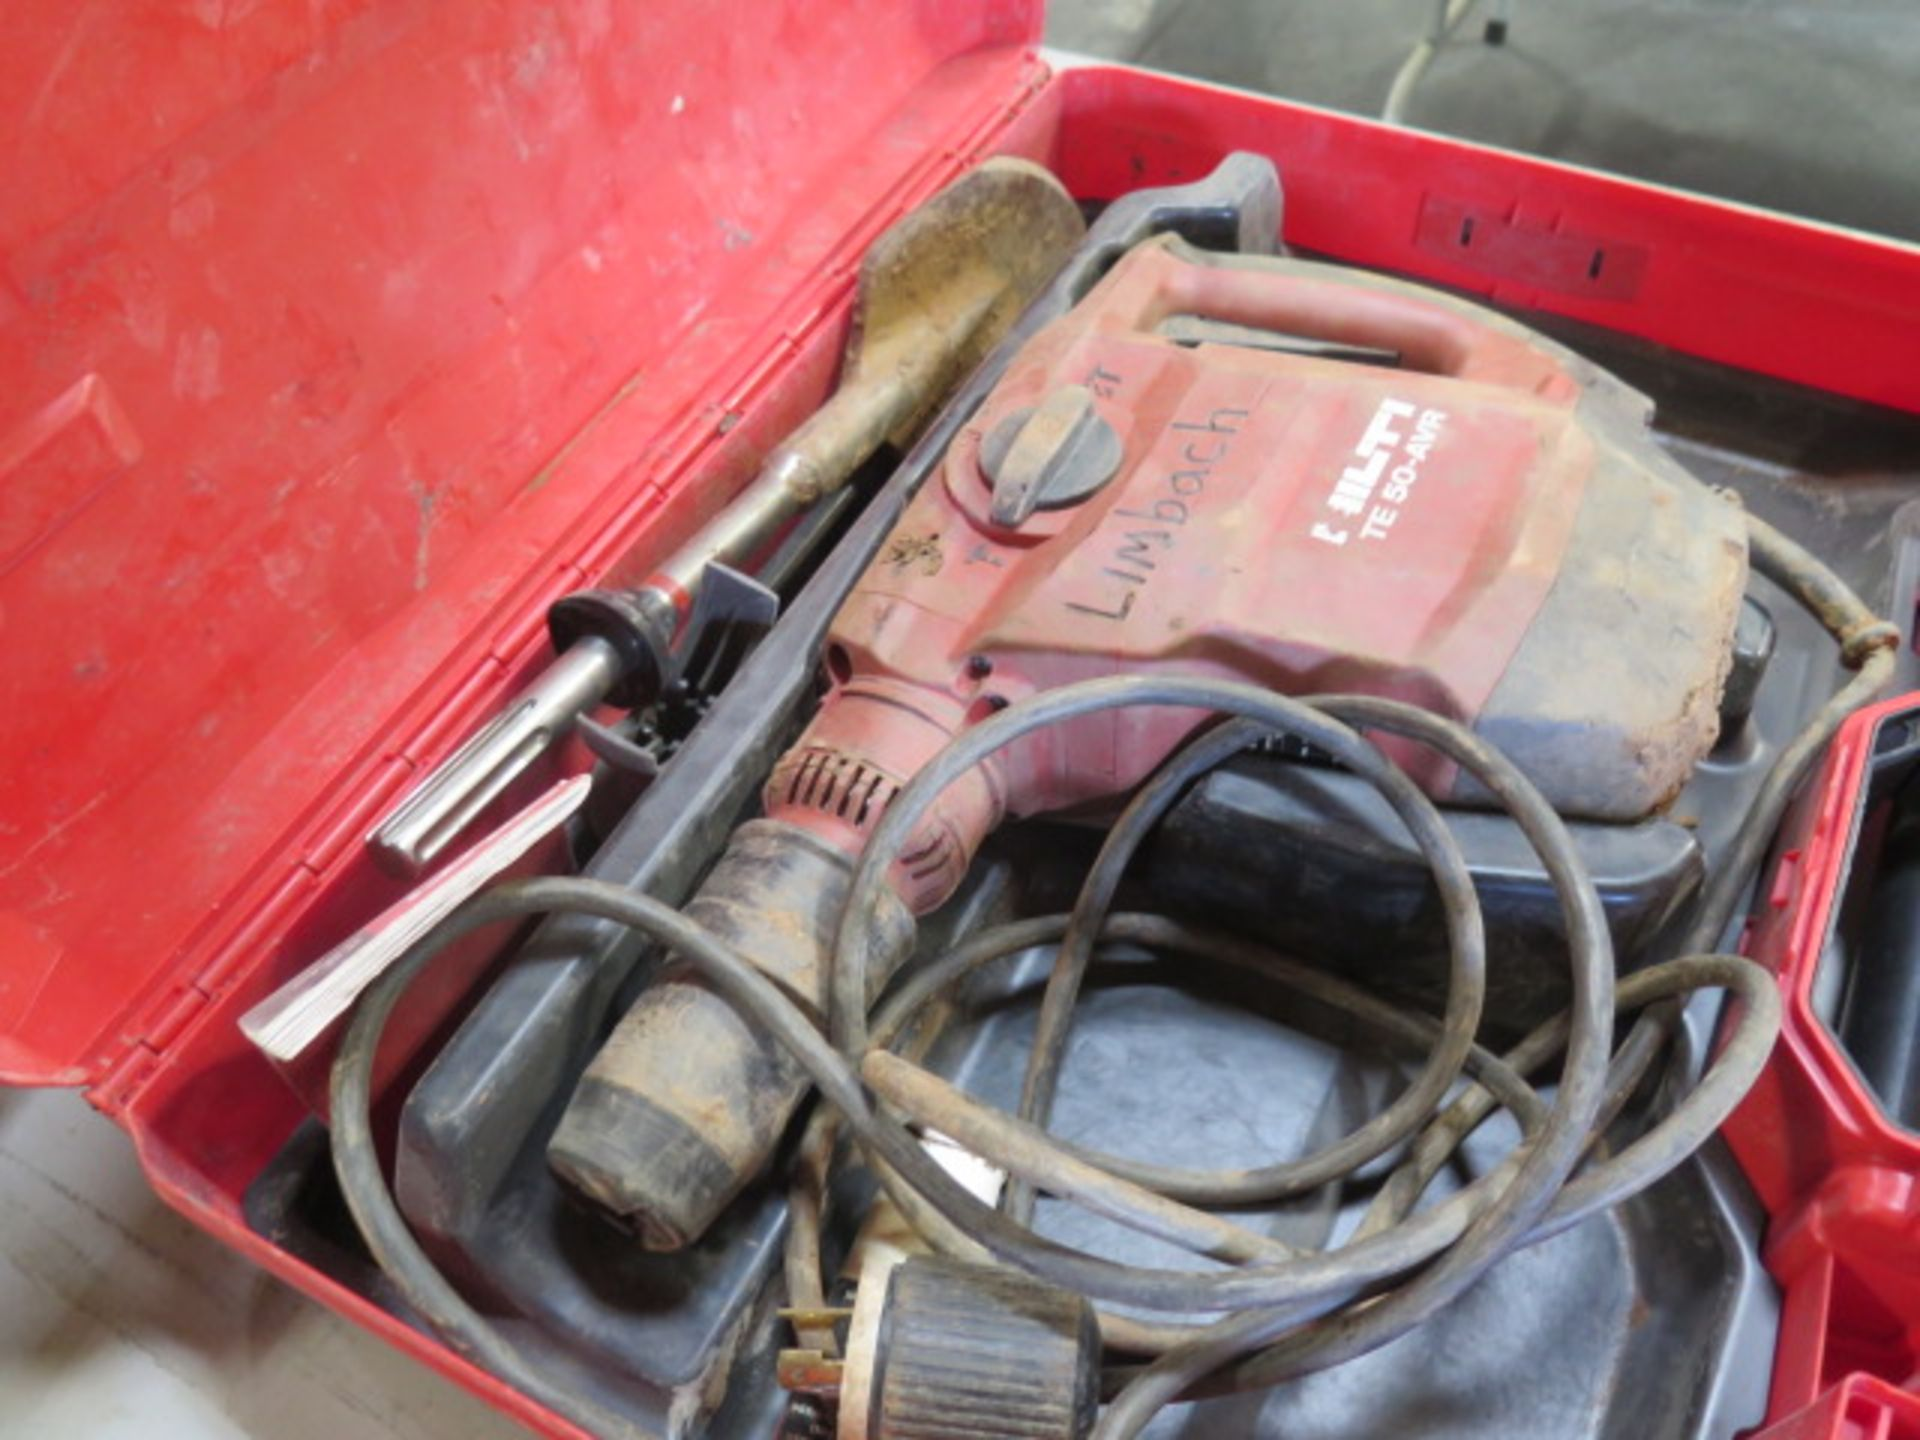 Hilti TE 50-AVR Hammer Drill (SOLD AS-IS - NO WARRANTY) - Image 2 of 6